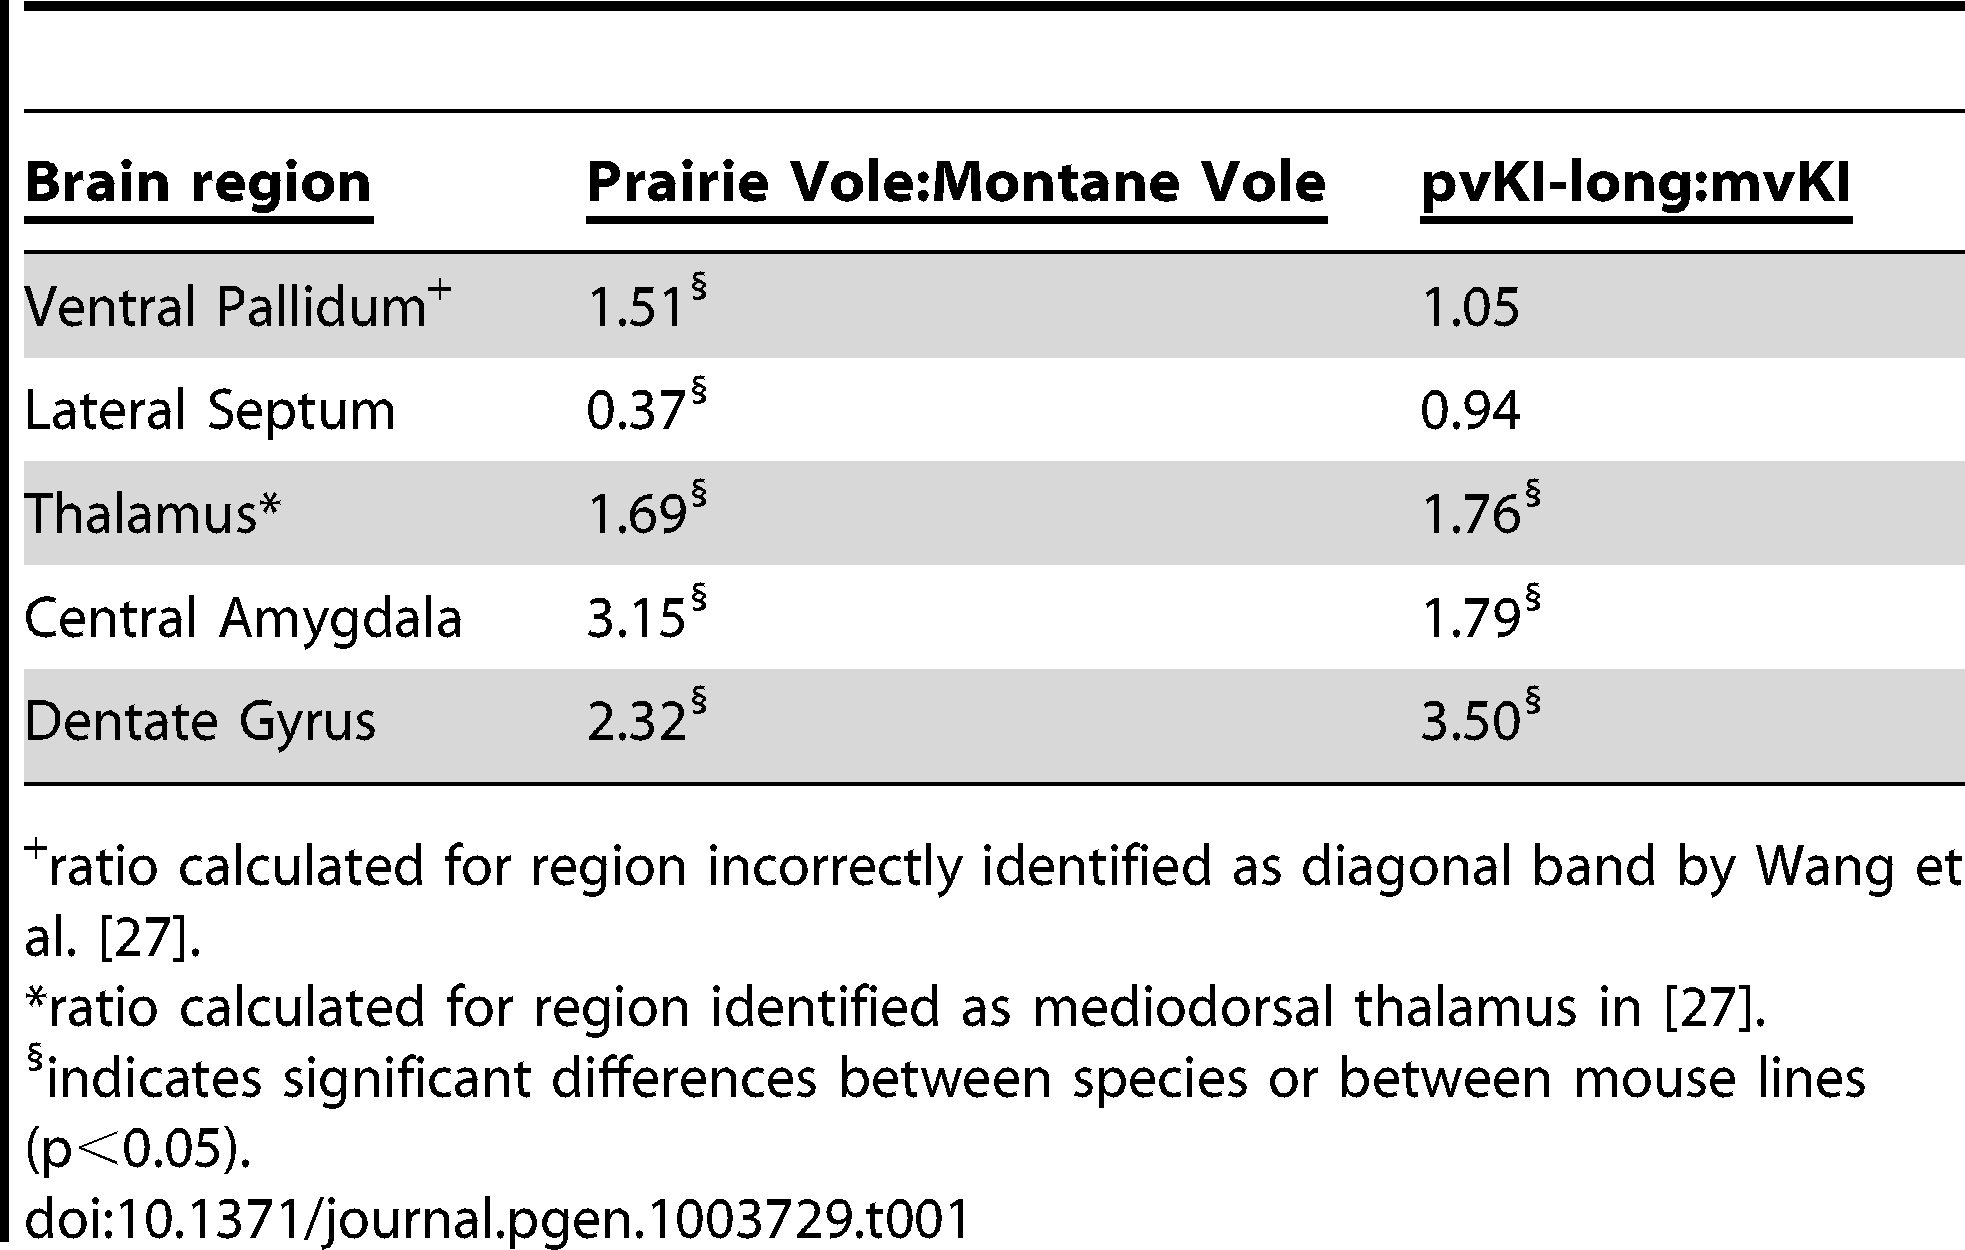 Comparison of V1aR binding ratios in prairie∶montane voles and pvKI-long∶mvKI mice.